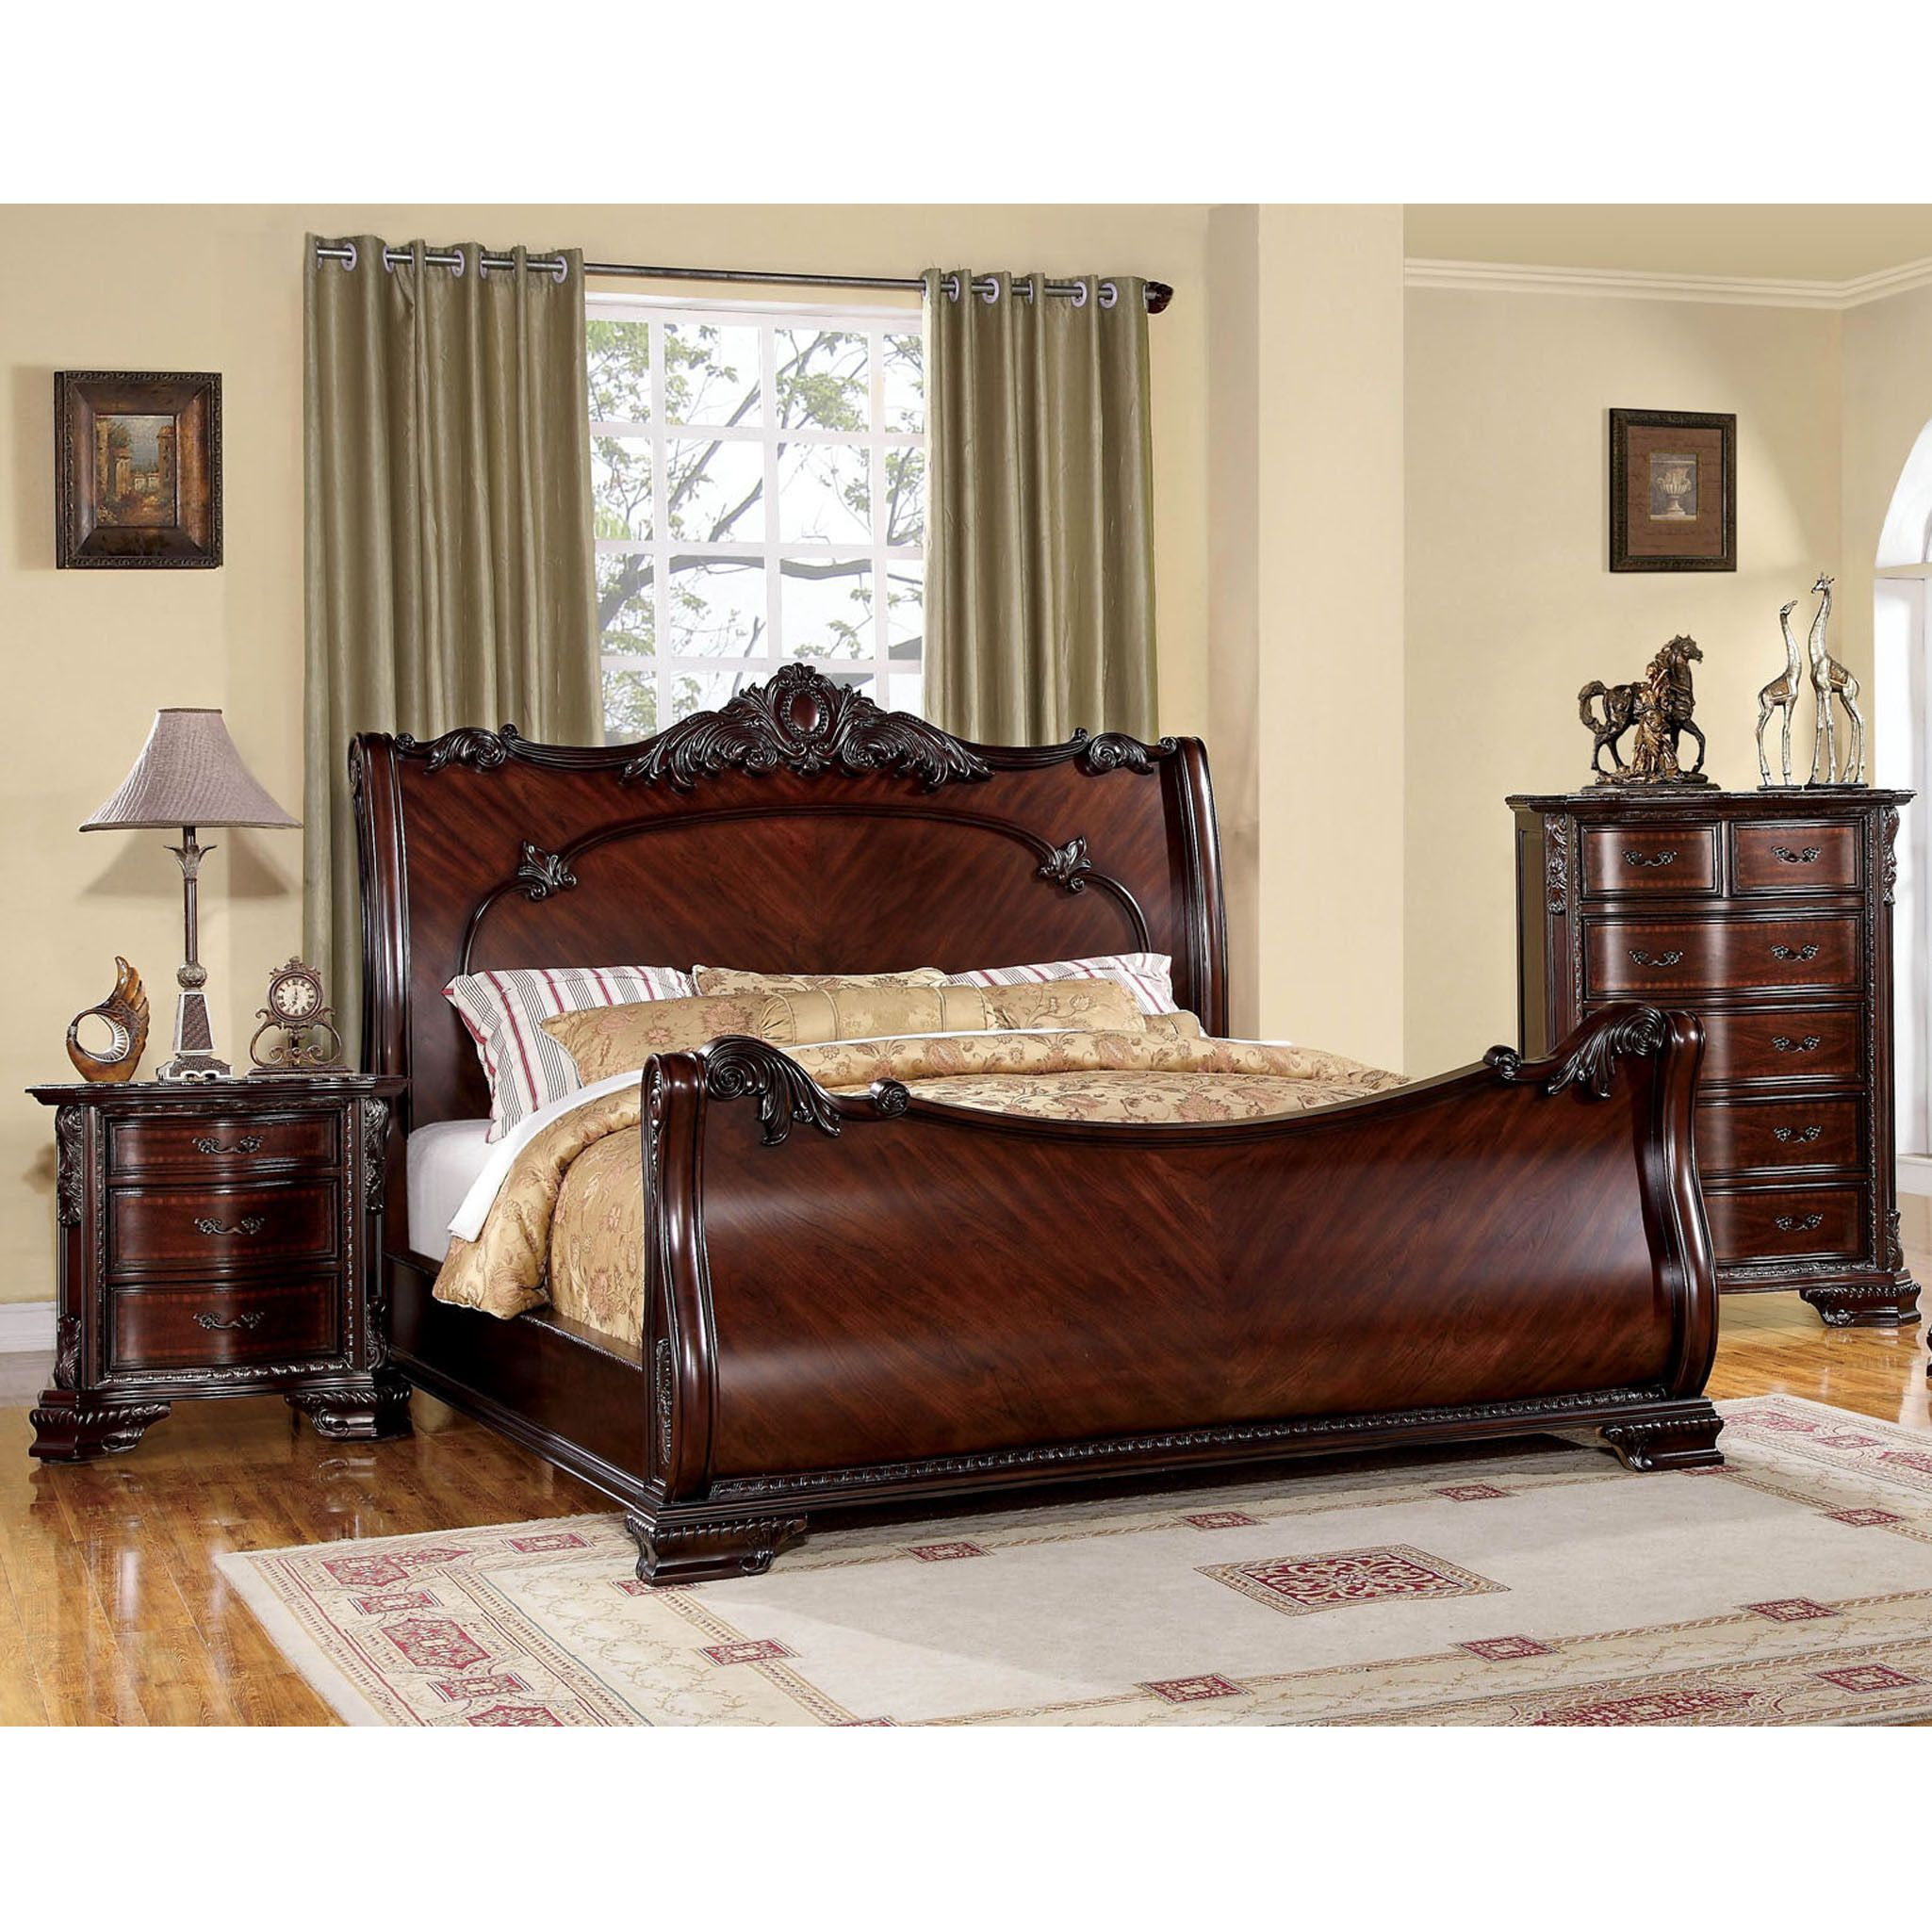 master furniture bedroom yf with within wooden ideas cherry wood design interior